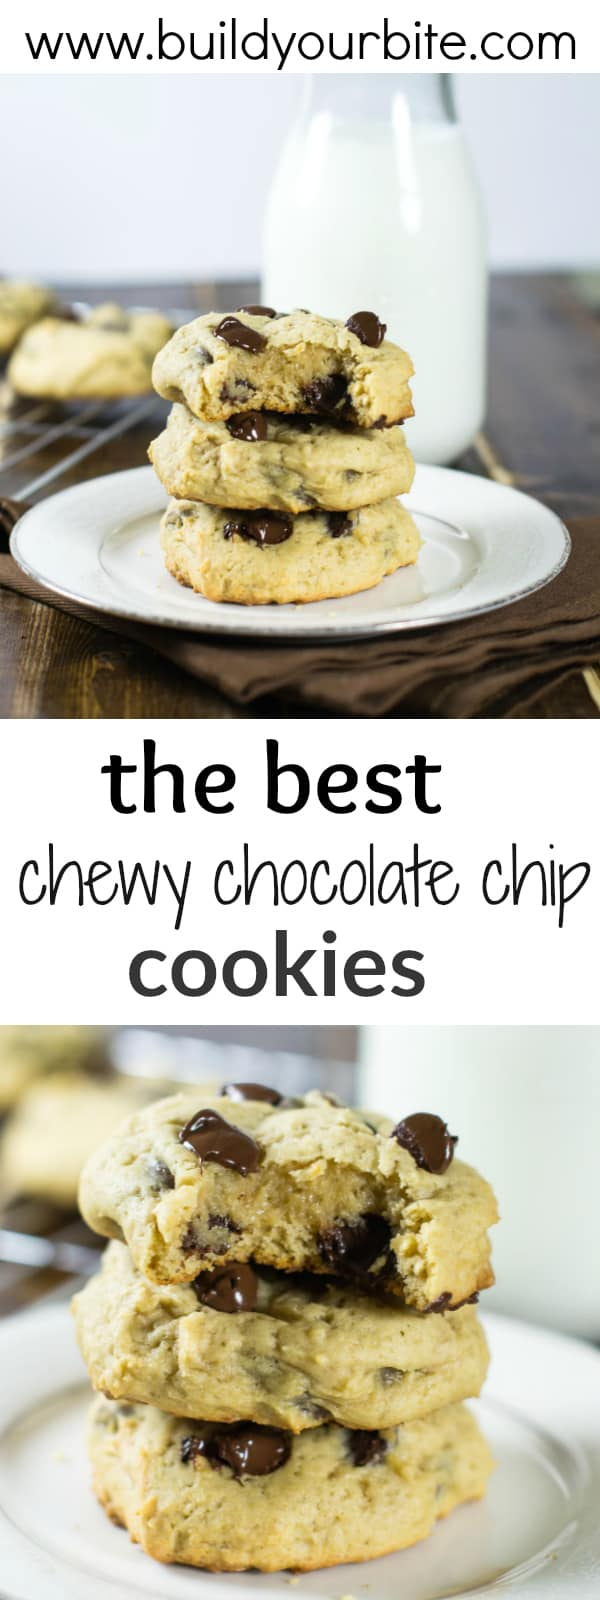 best chewy chocolate chip cookies - these taste like a cake cookie hybrid and stay soft even after cooling. Your family will love them!